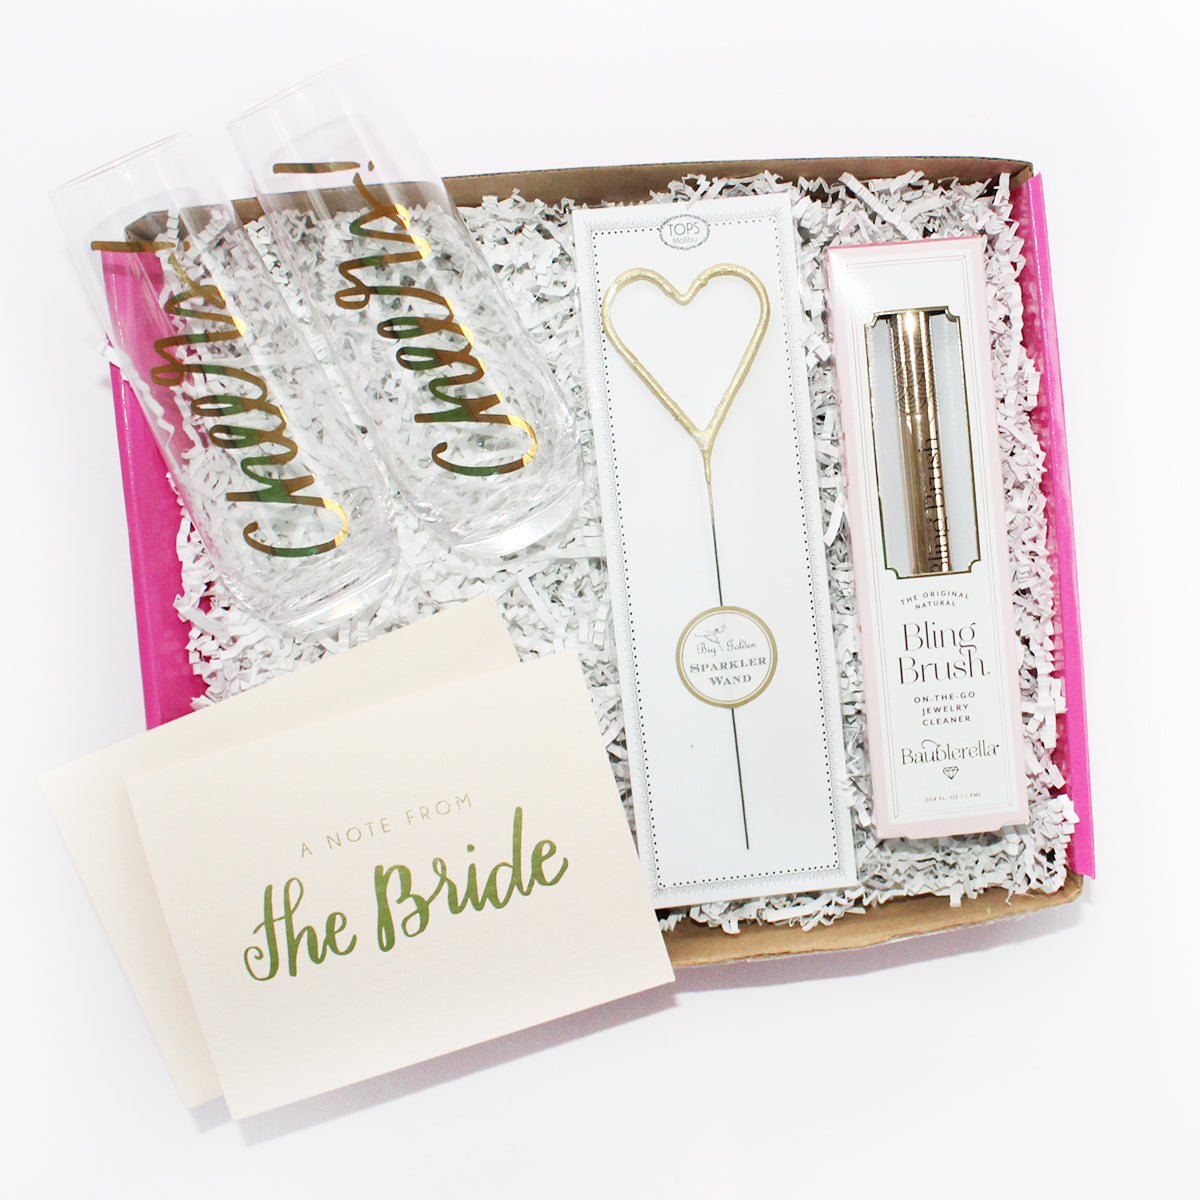 "the perfect gift box for the bride that includes ""cheers"" champagne flutes, a note from the bride, heart sparkler, and bling brush"